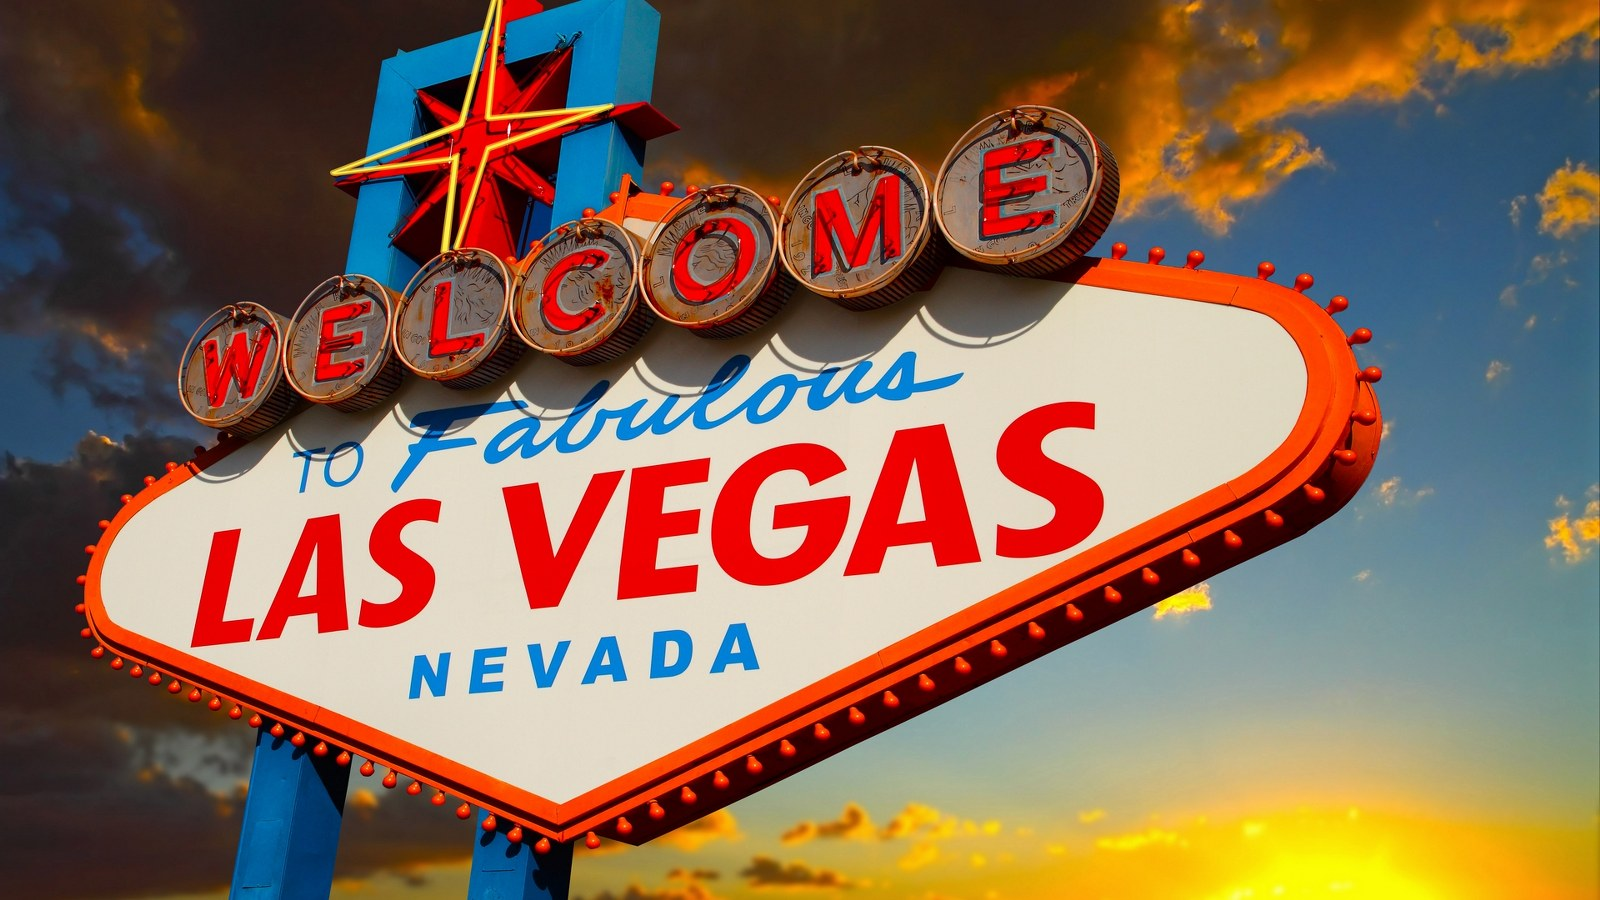 Las-Vegas-Logo-Wallpaper